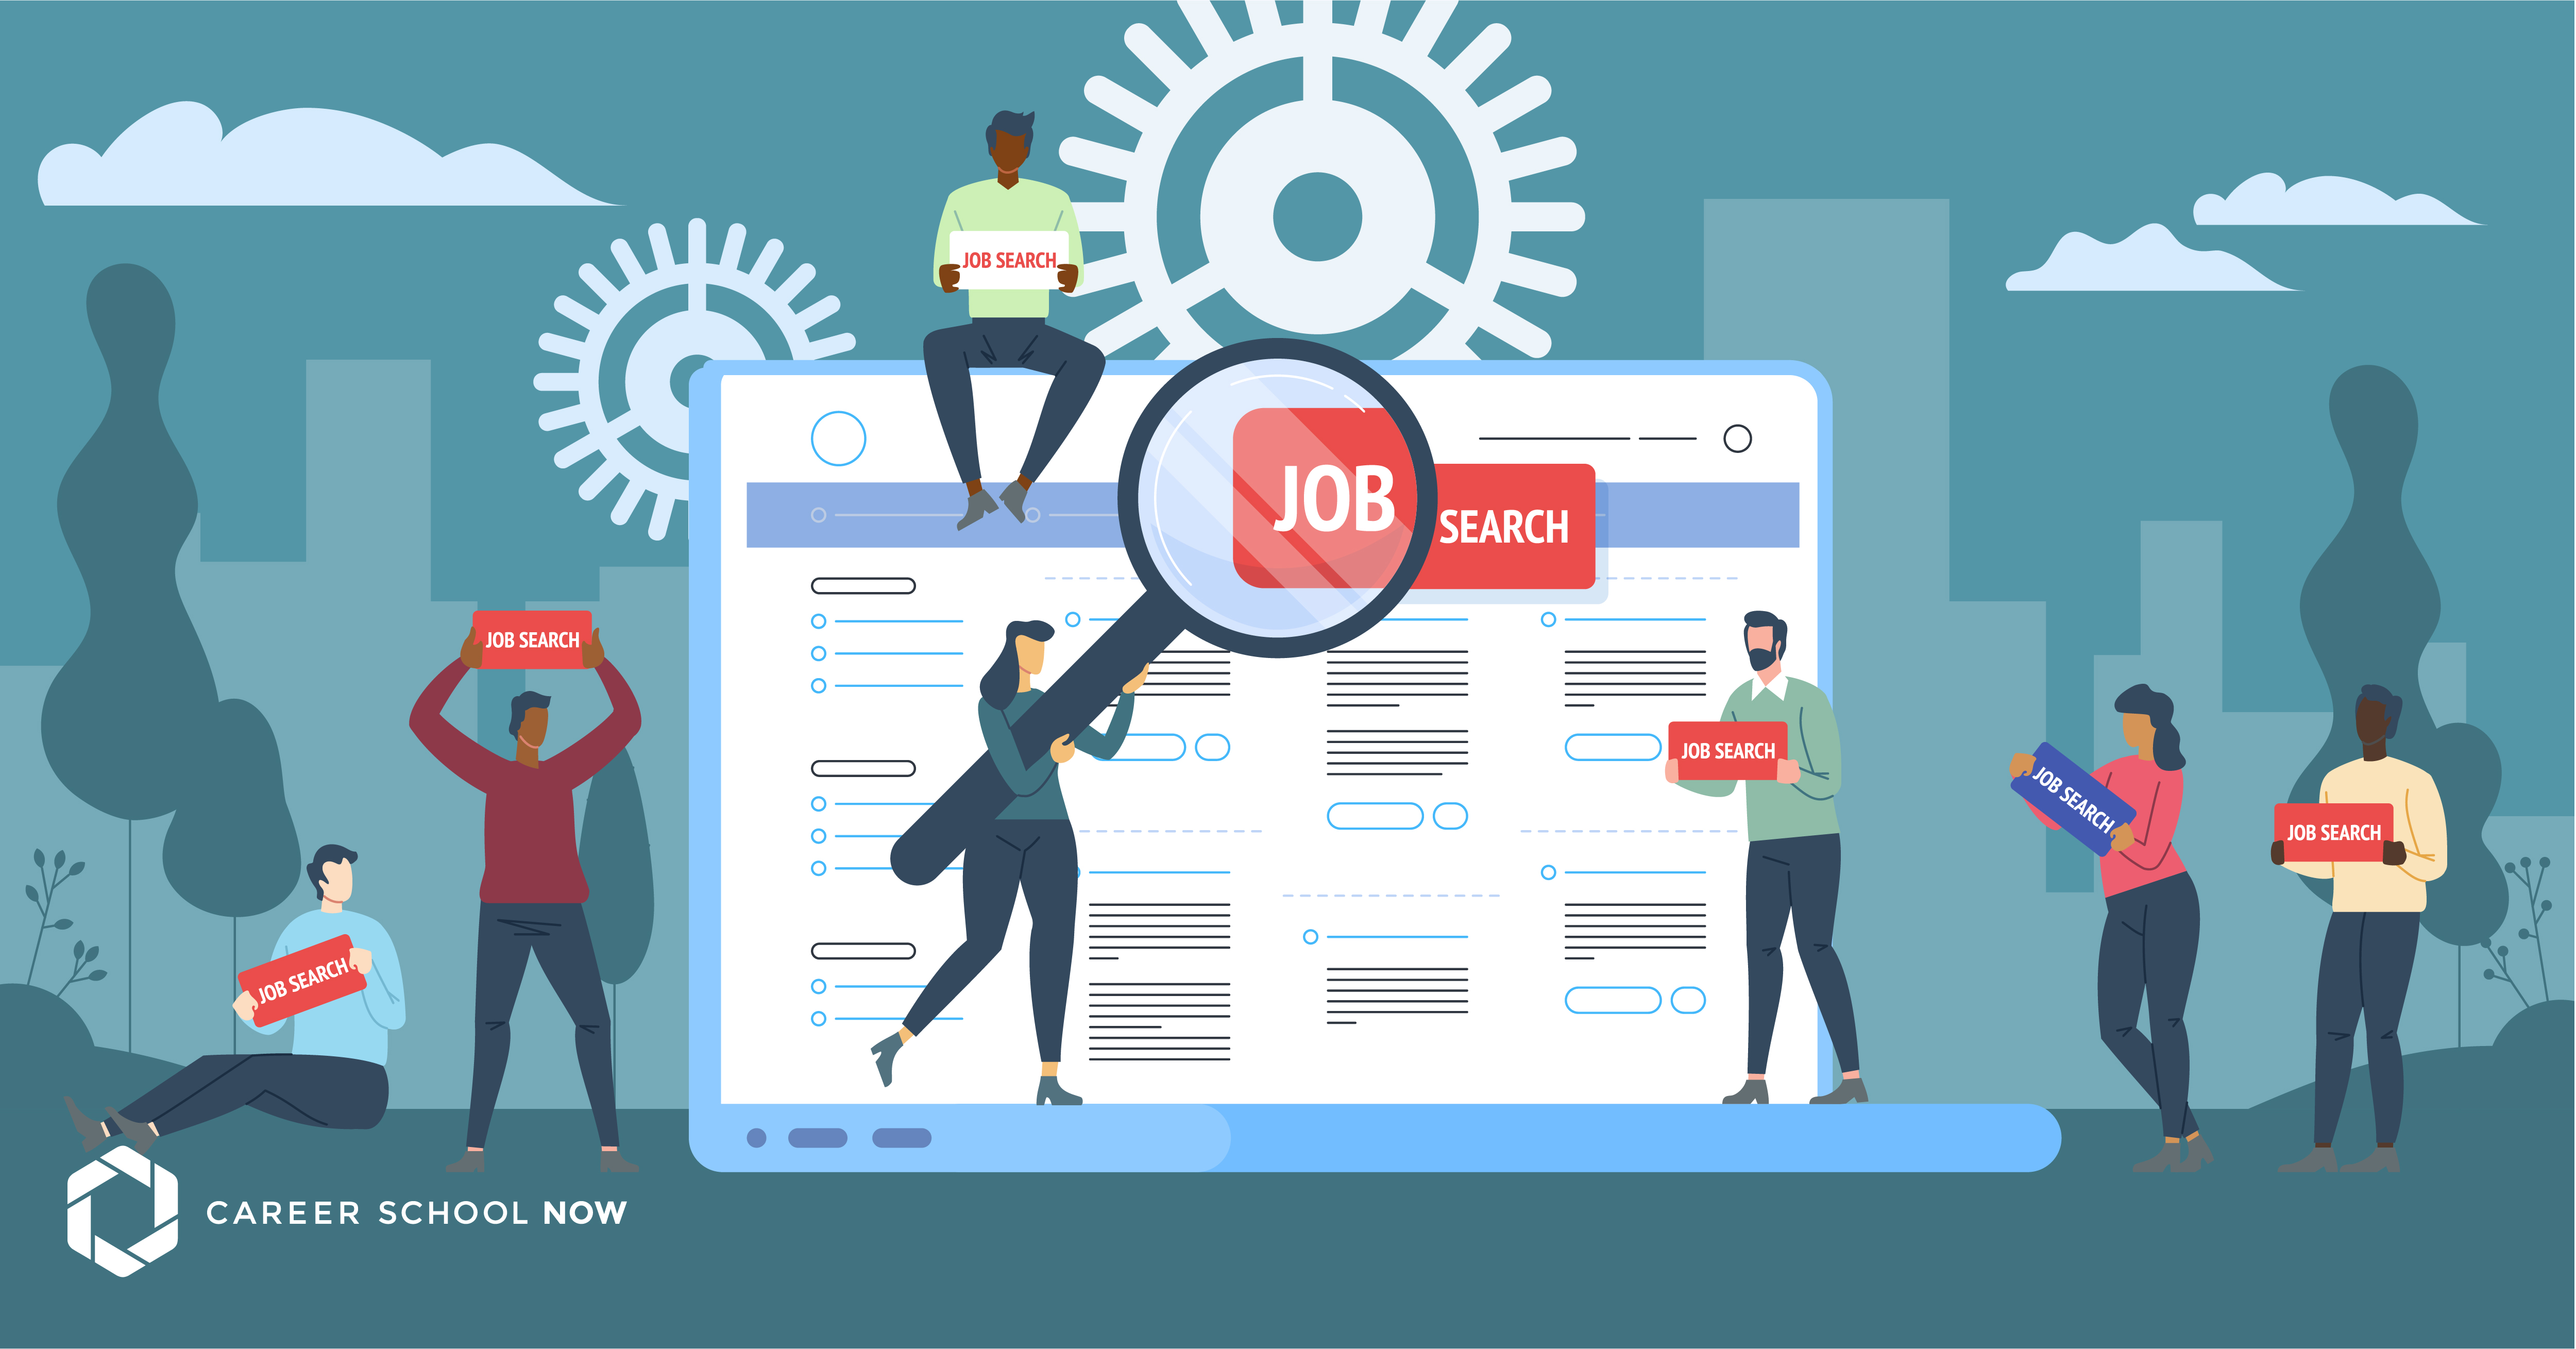 Job Search Tips For Recent Trade School Grads